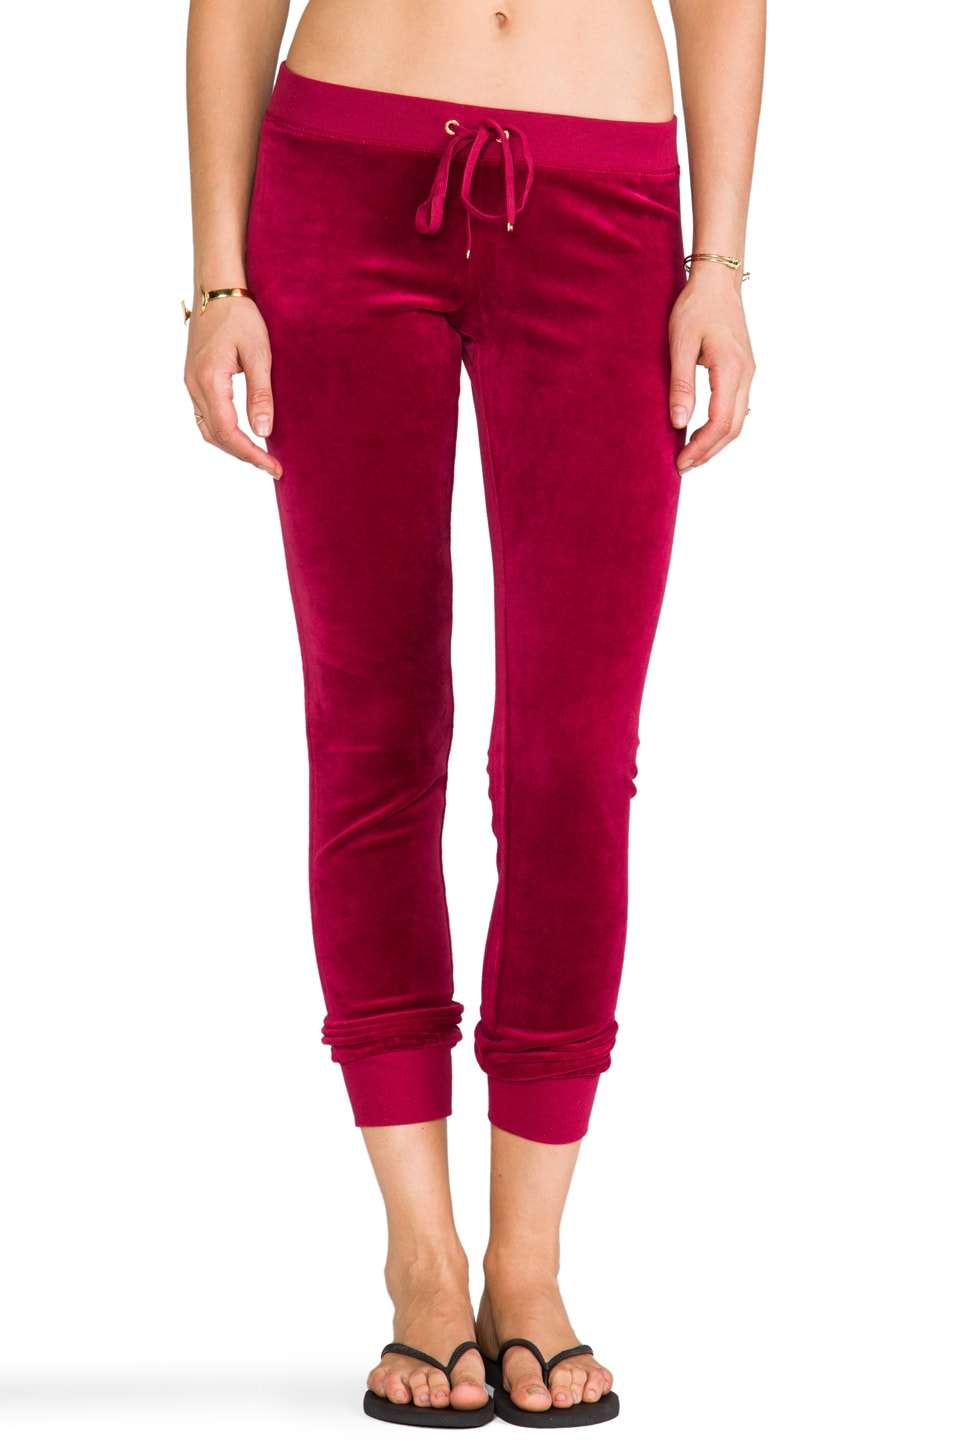 Juicy Couture J Bling Slim Comfy Pant in Well-Coiffed